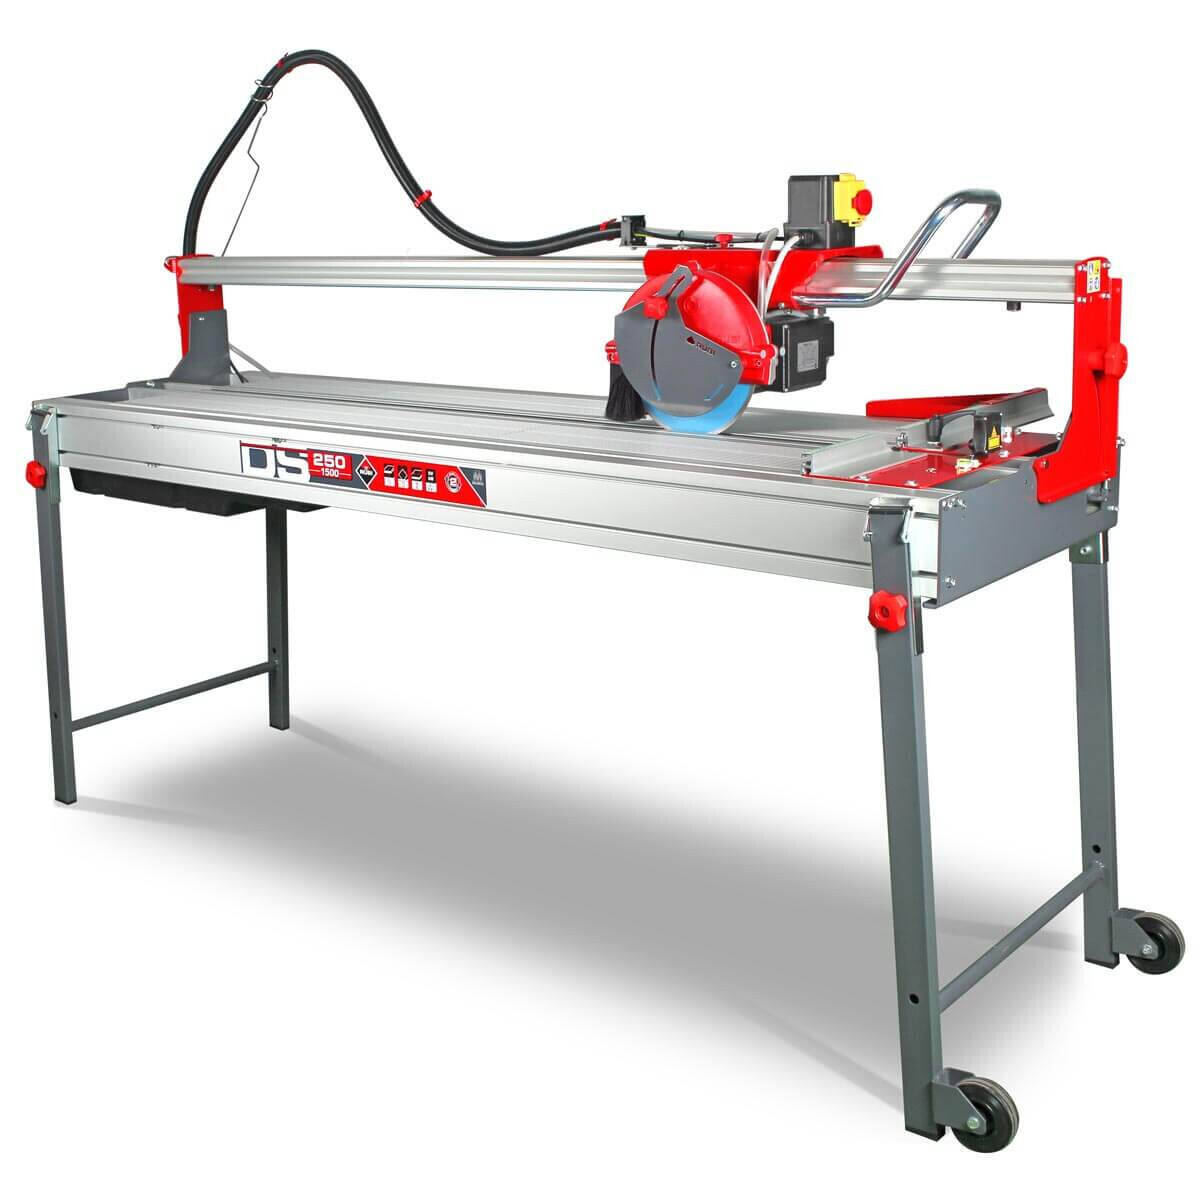 Rubi DS-250-N Stone Saw front